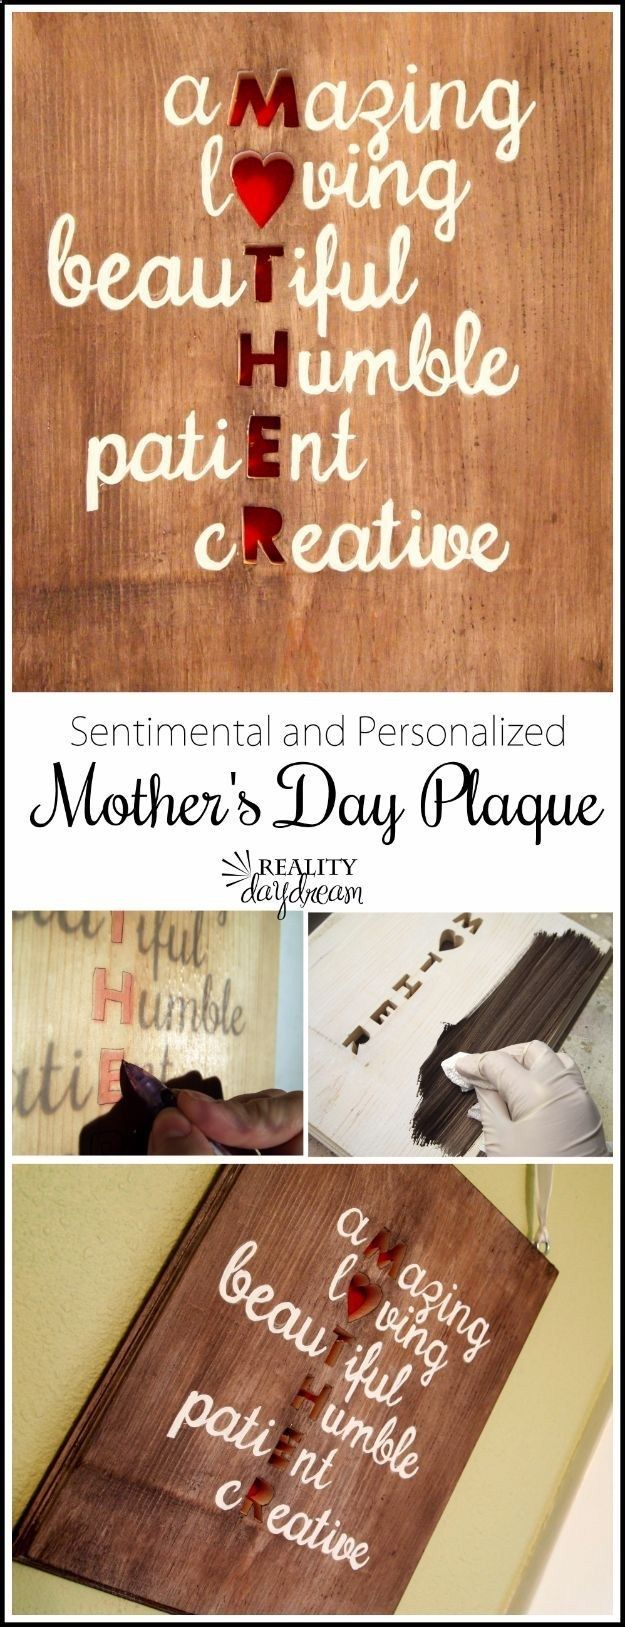 Creative diy mothers day gifts ideas wall art for mom thoughtful creative diy mothers day gifts ideas wall art for mom thoughtful homemade gifts for solutioingenieria Images